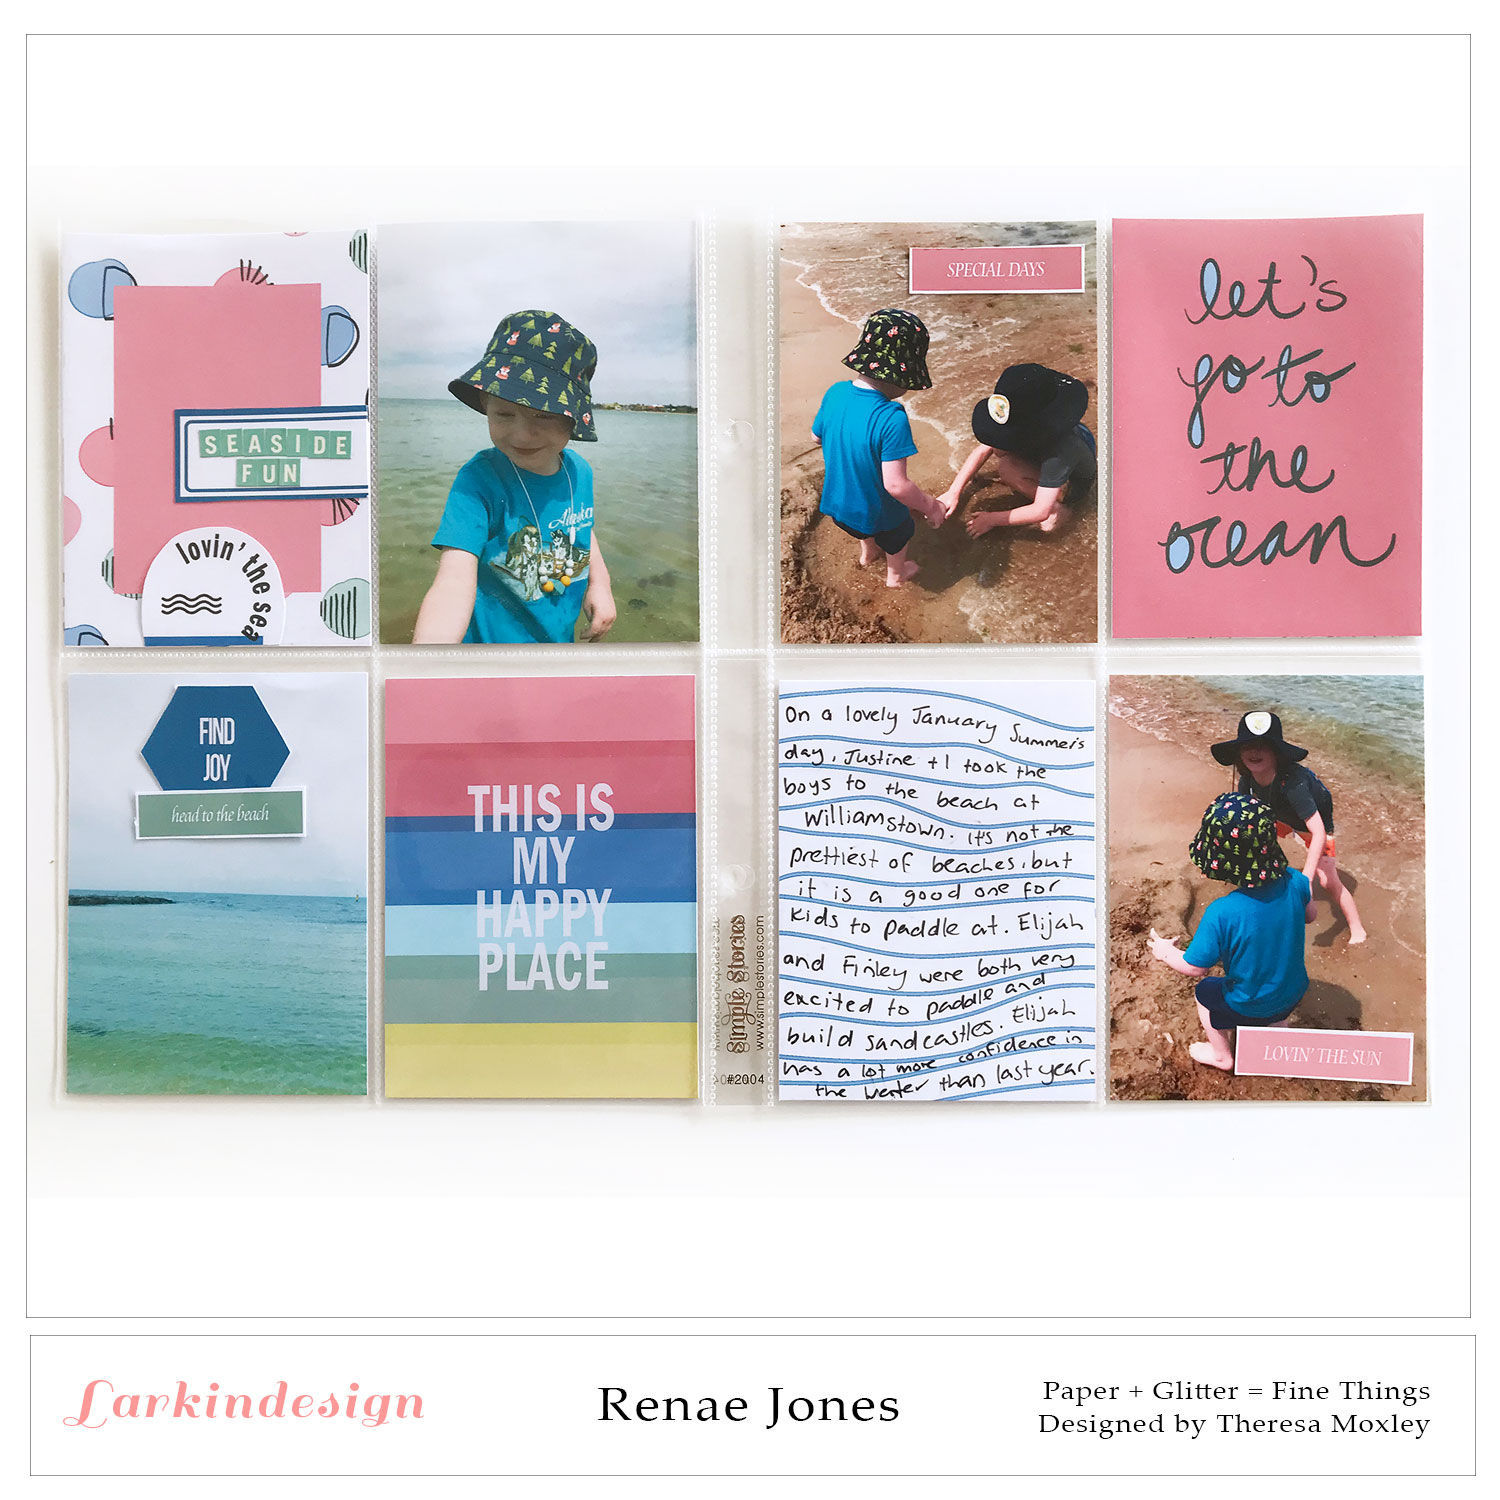 Larkindesign Creative Team Renae Jones | Lovin' the Sun Digital Collection